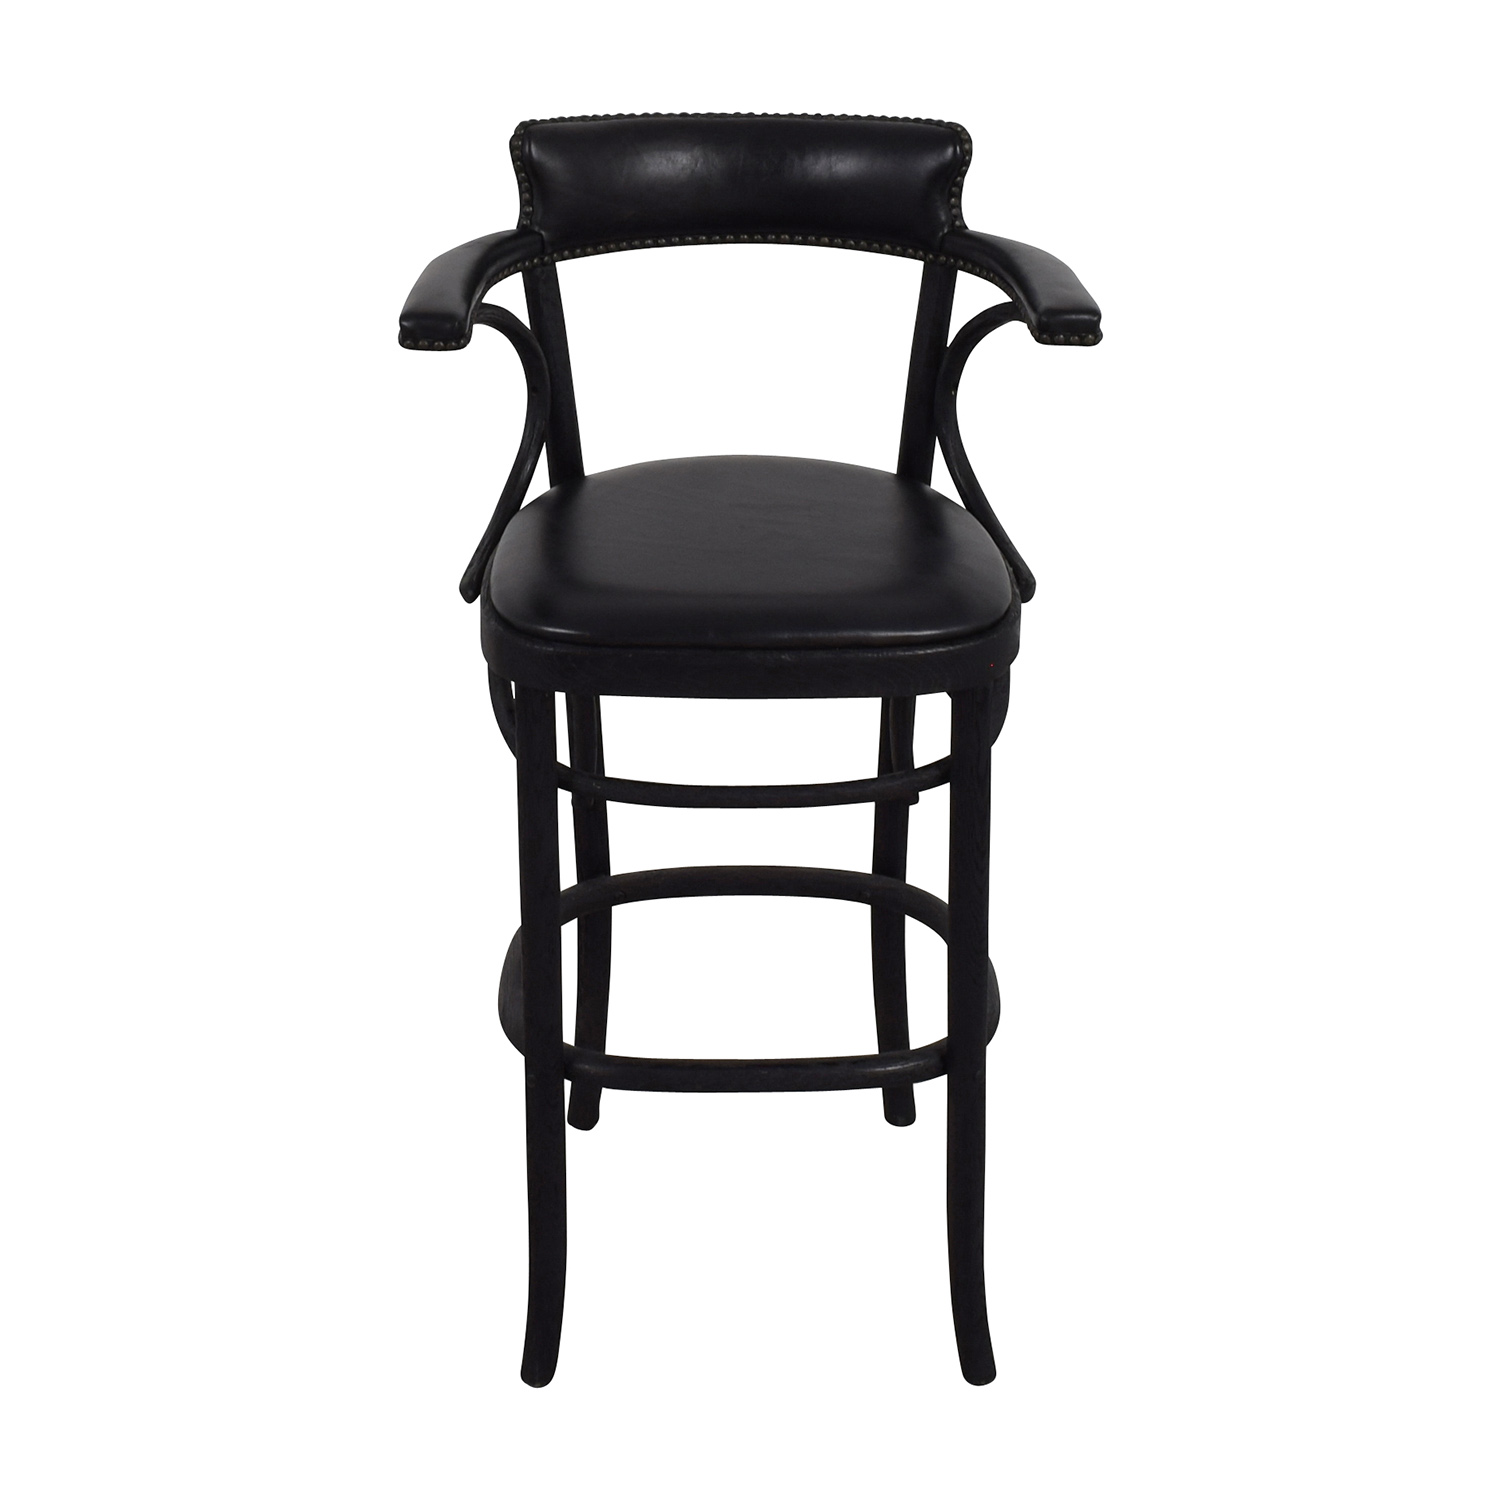 Restoration Hardware Restoration Hardware Vienna Cafe Leather Stool coupon